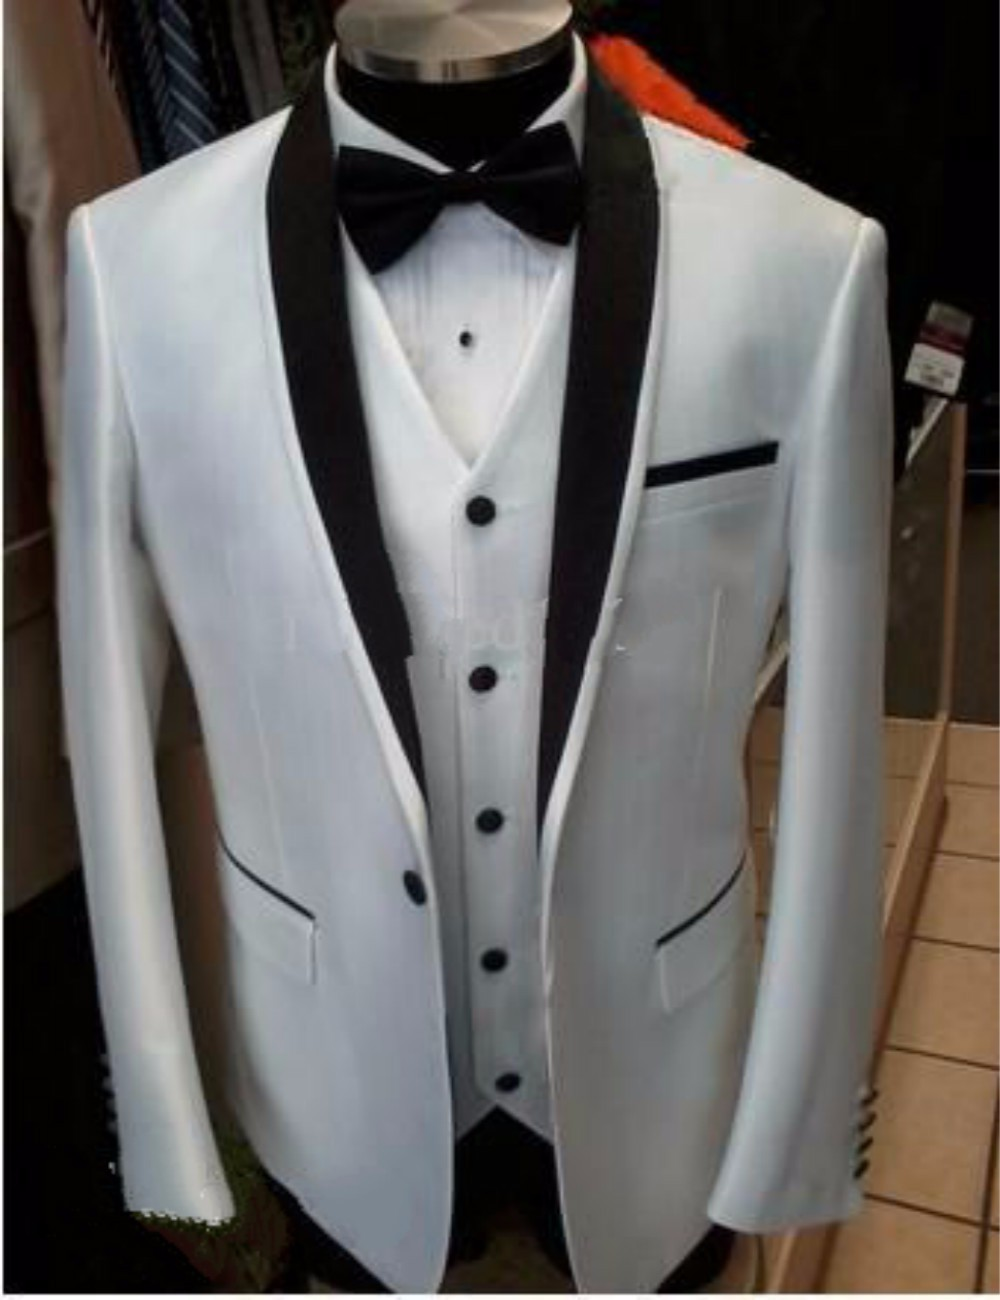 Custom Design Side Slit One Button White Groom Tuxedos Black Satin Lapel Groomsman Best man Suits (Jacket+Pants+Vest+Tie) NO-169